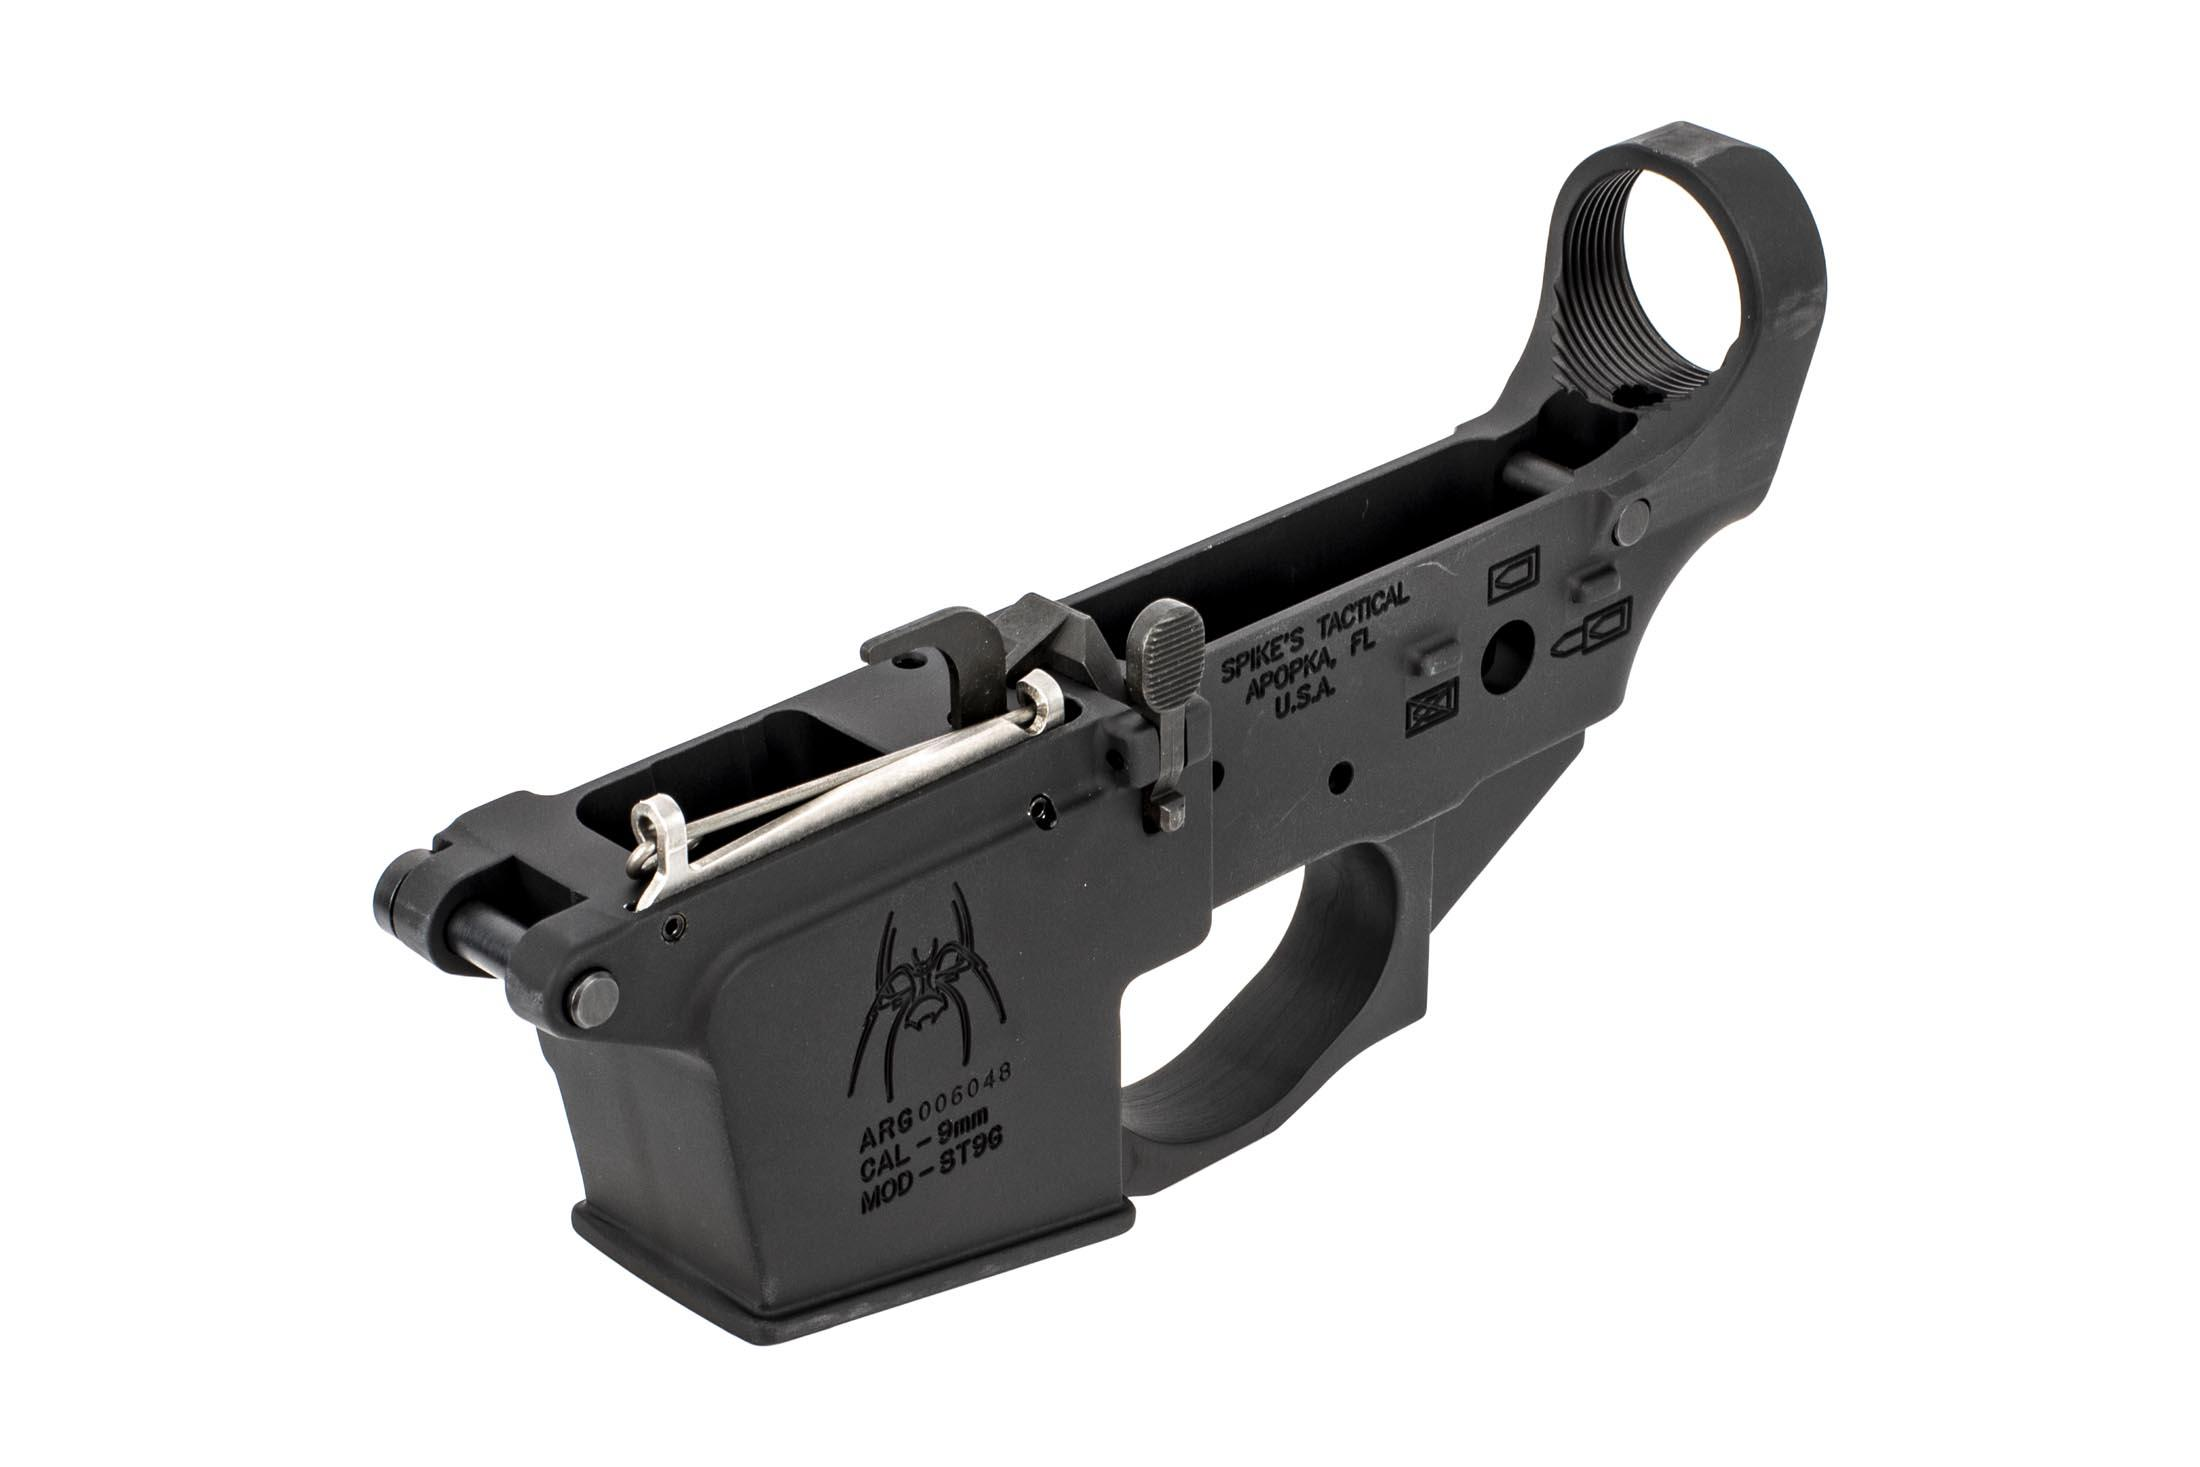 Spikes Tactical Spider 9mm Lower Glock Non Ca Compliant Stls920